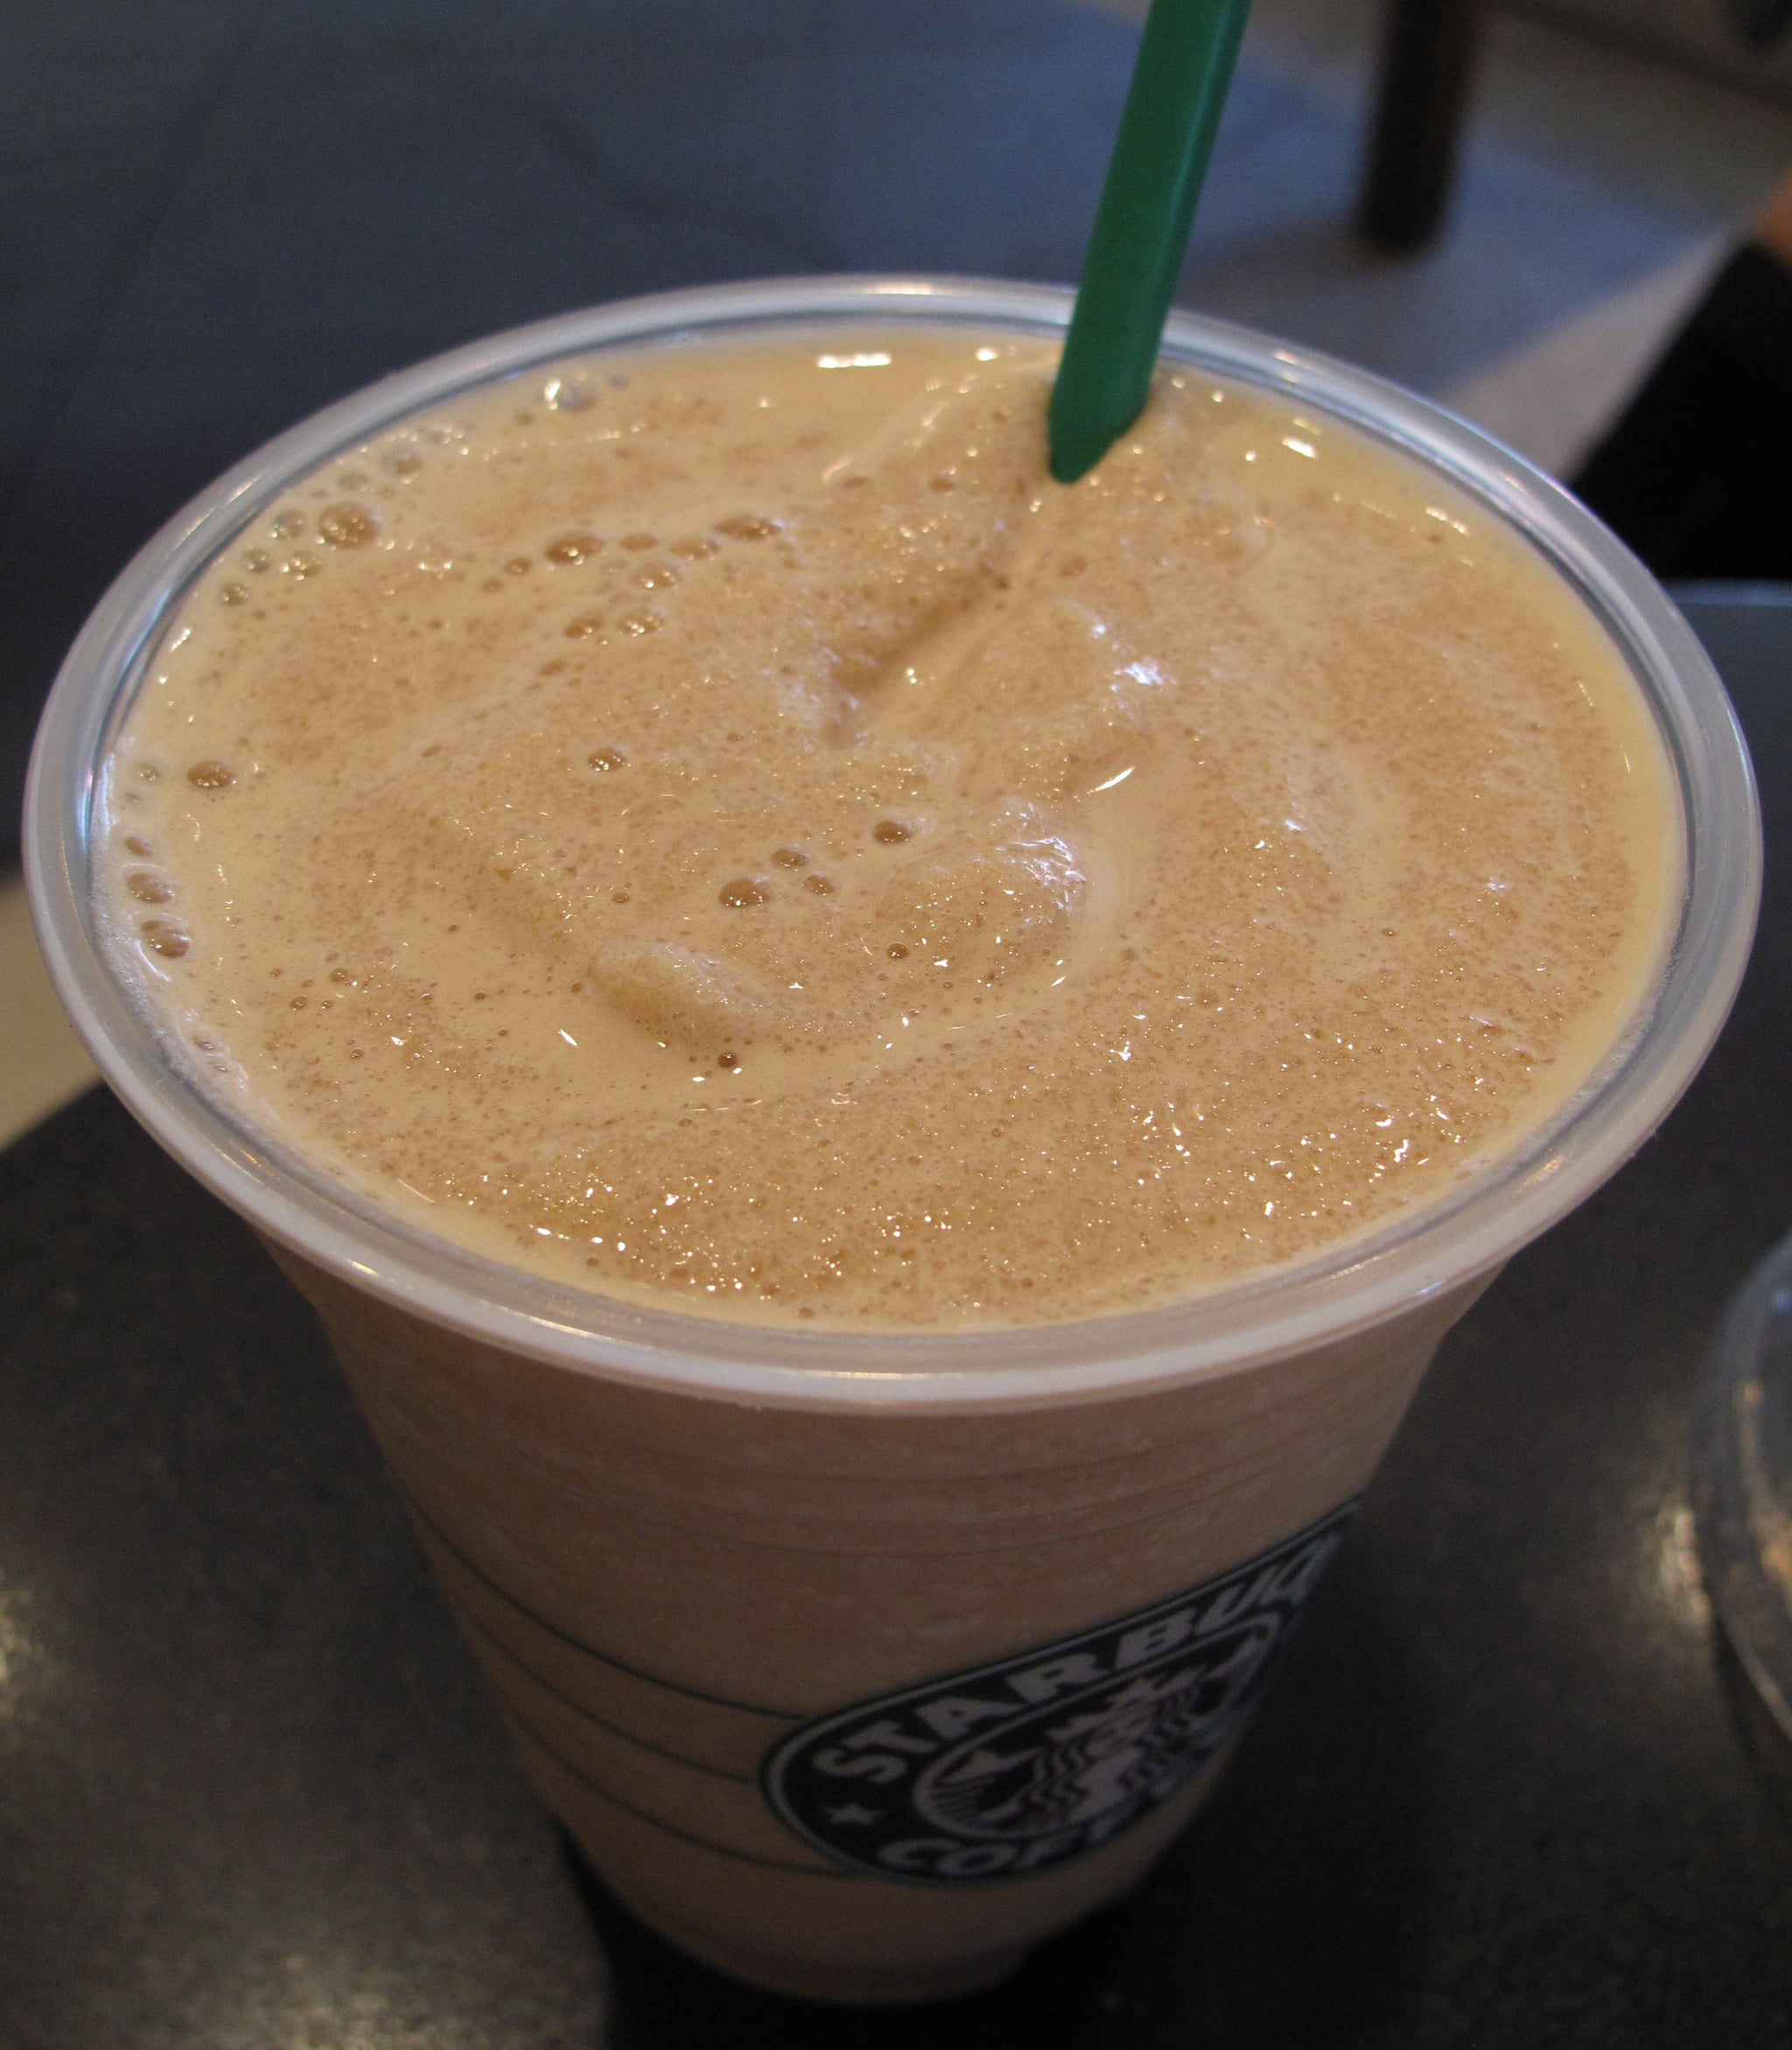 The consistency of the new Frappuccino is finer and more consistent.